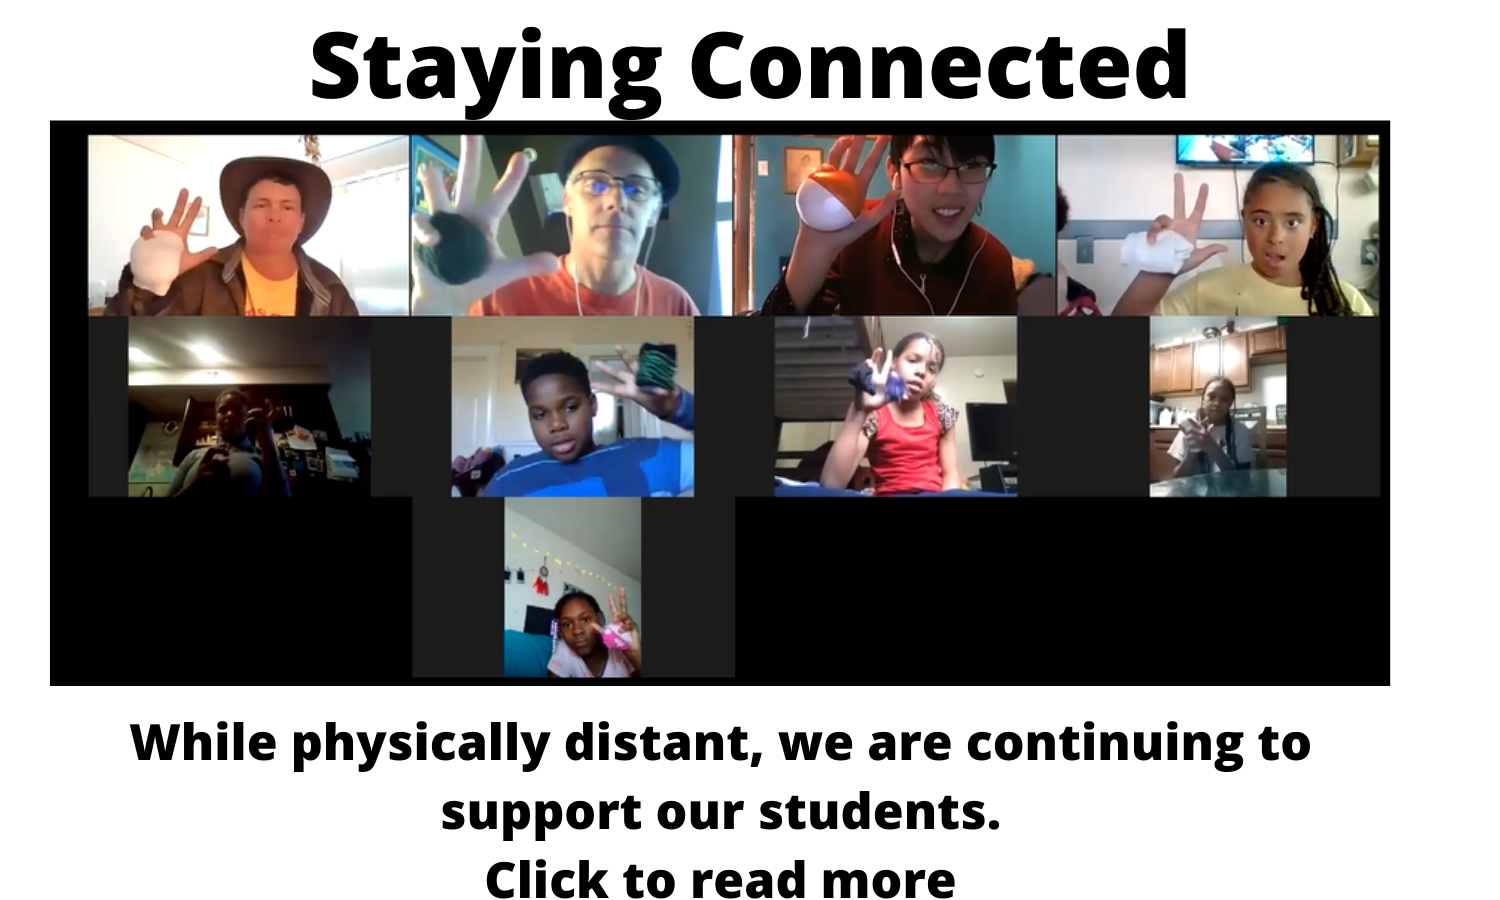 Staying Connected 1